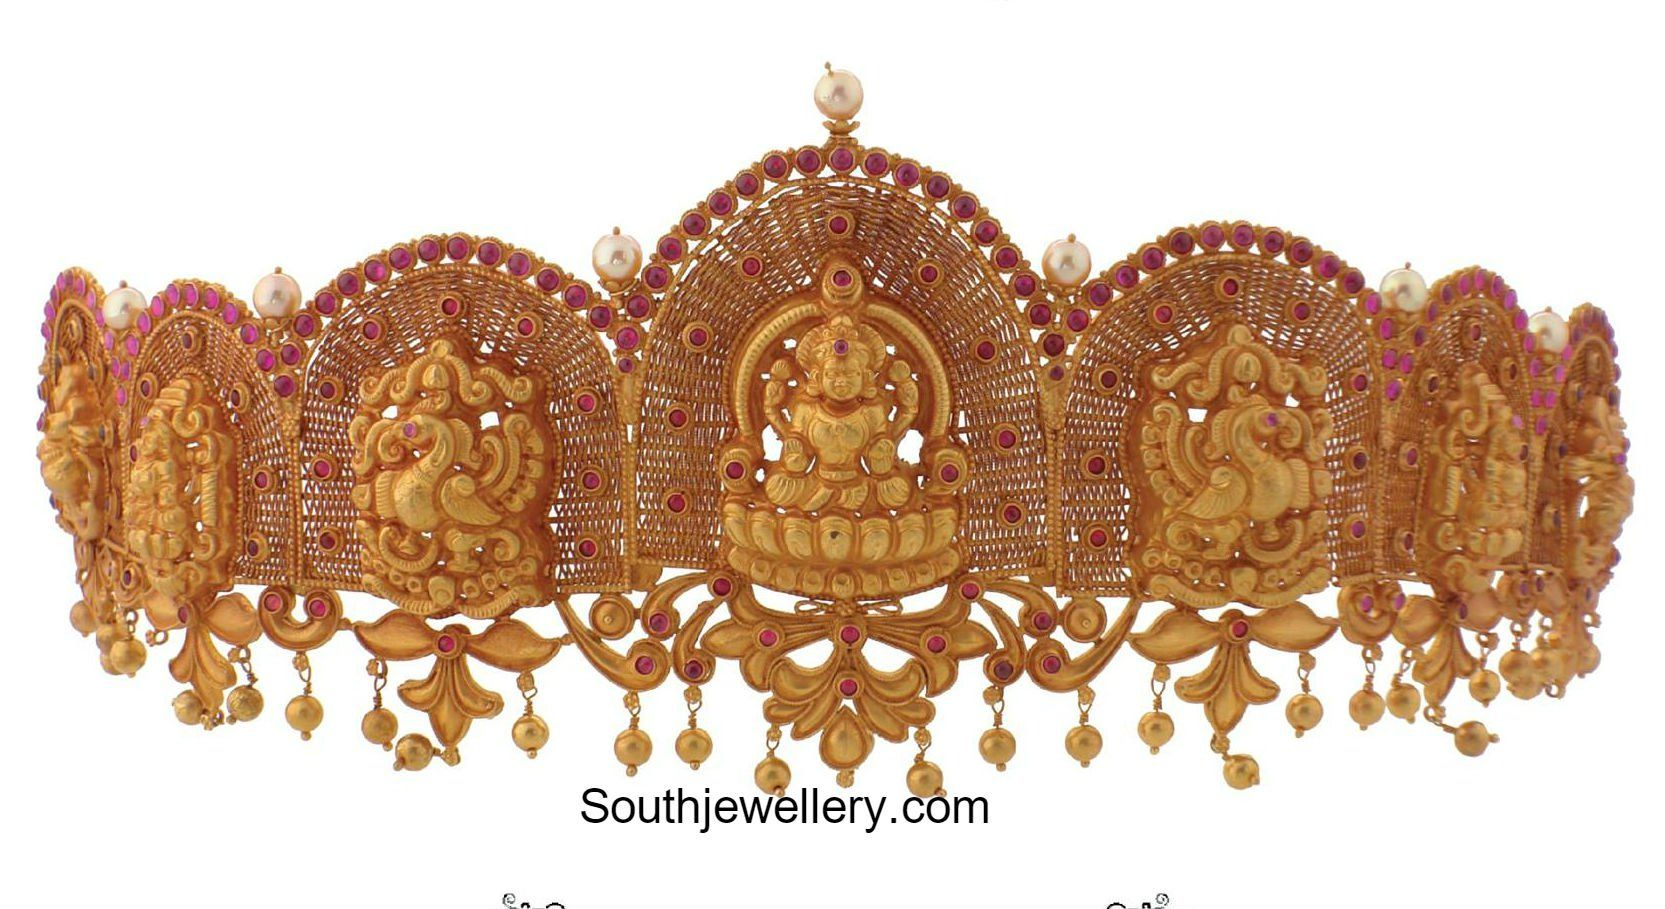 Gold vaddanam oddiyanam kammarpatta waisbelt designs south indian - Gold Vaddanam Oddiyanam Kammarpatta Waisbelt Designs South Indian 28